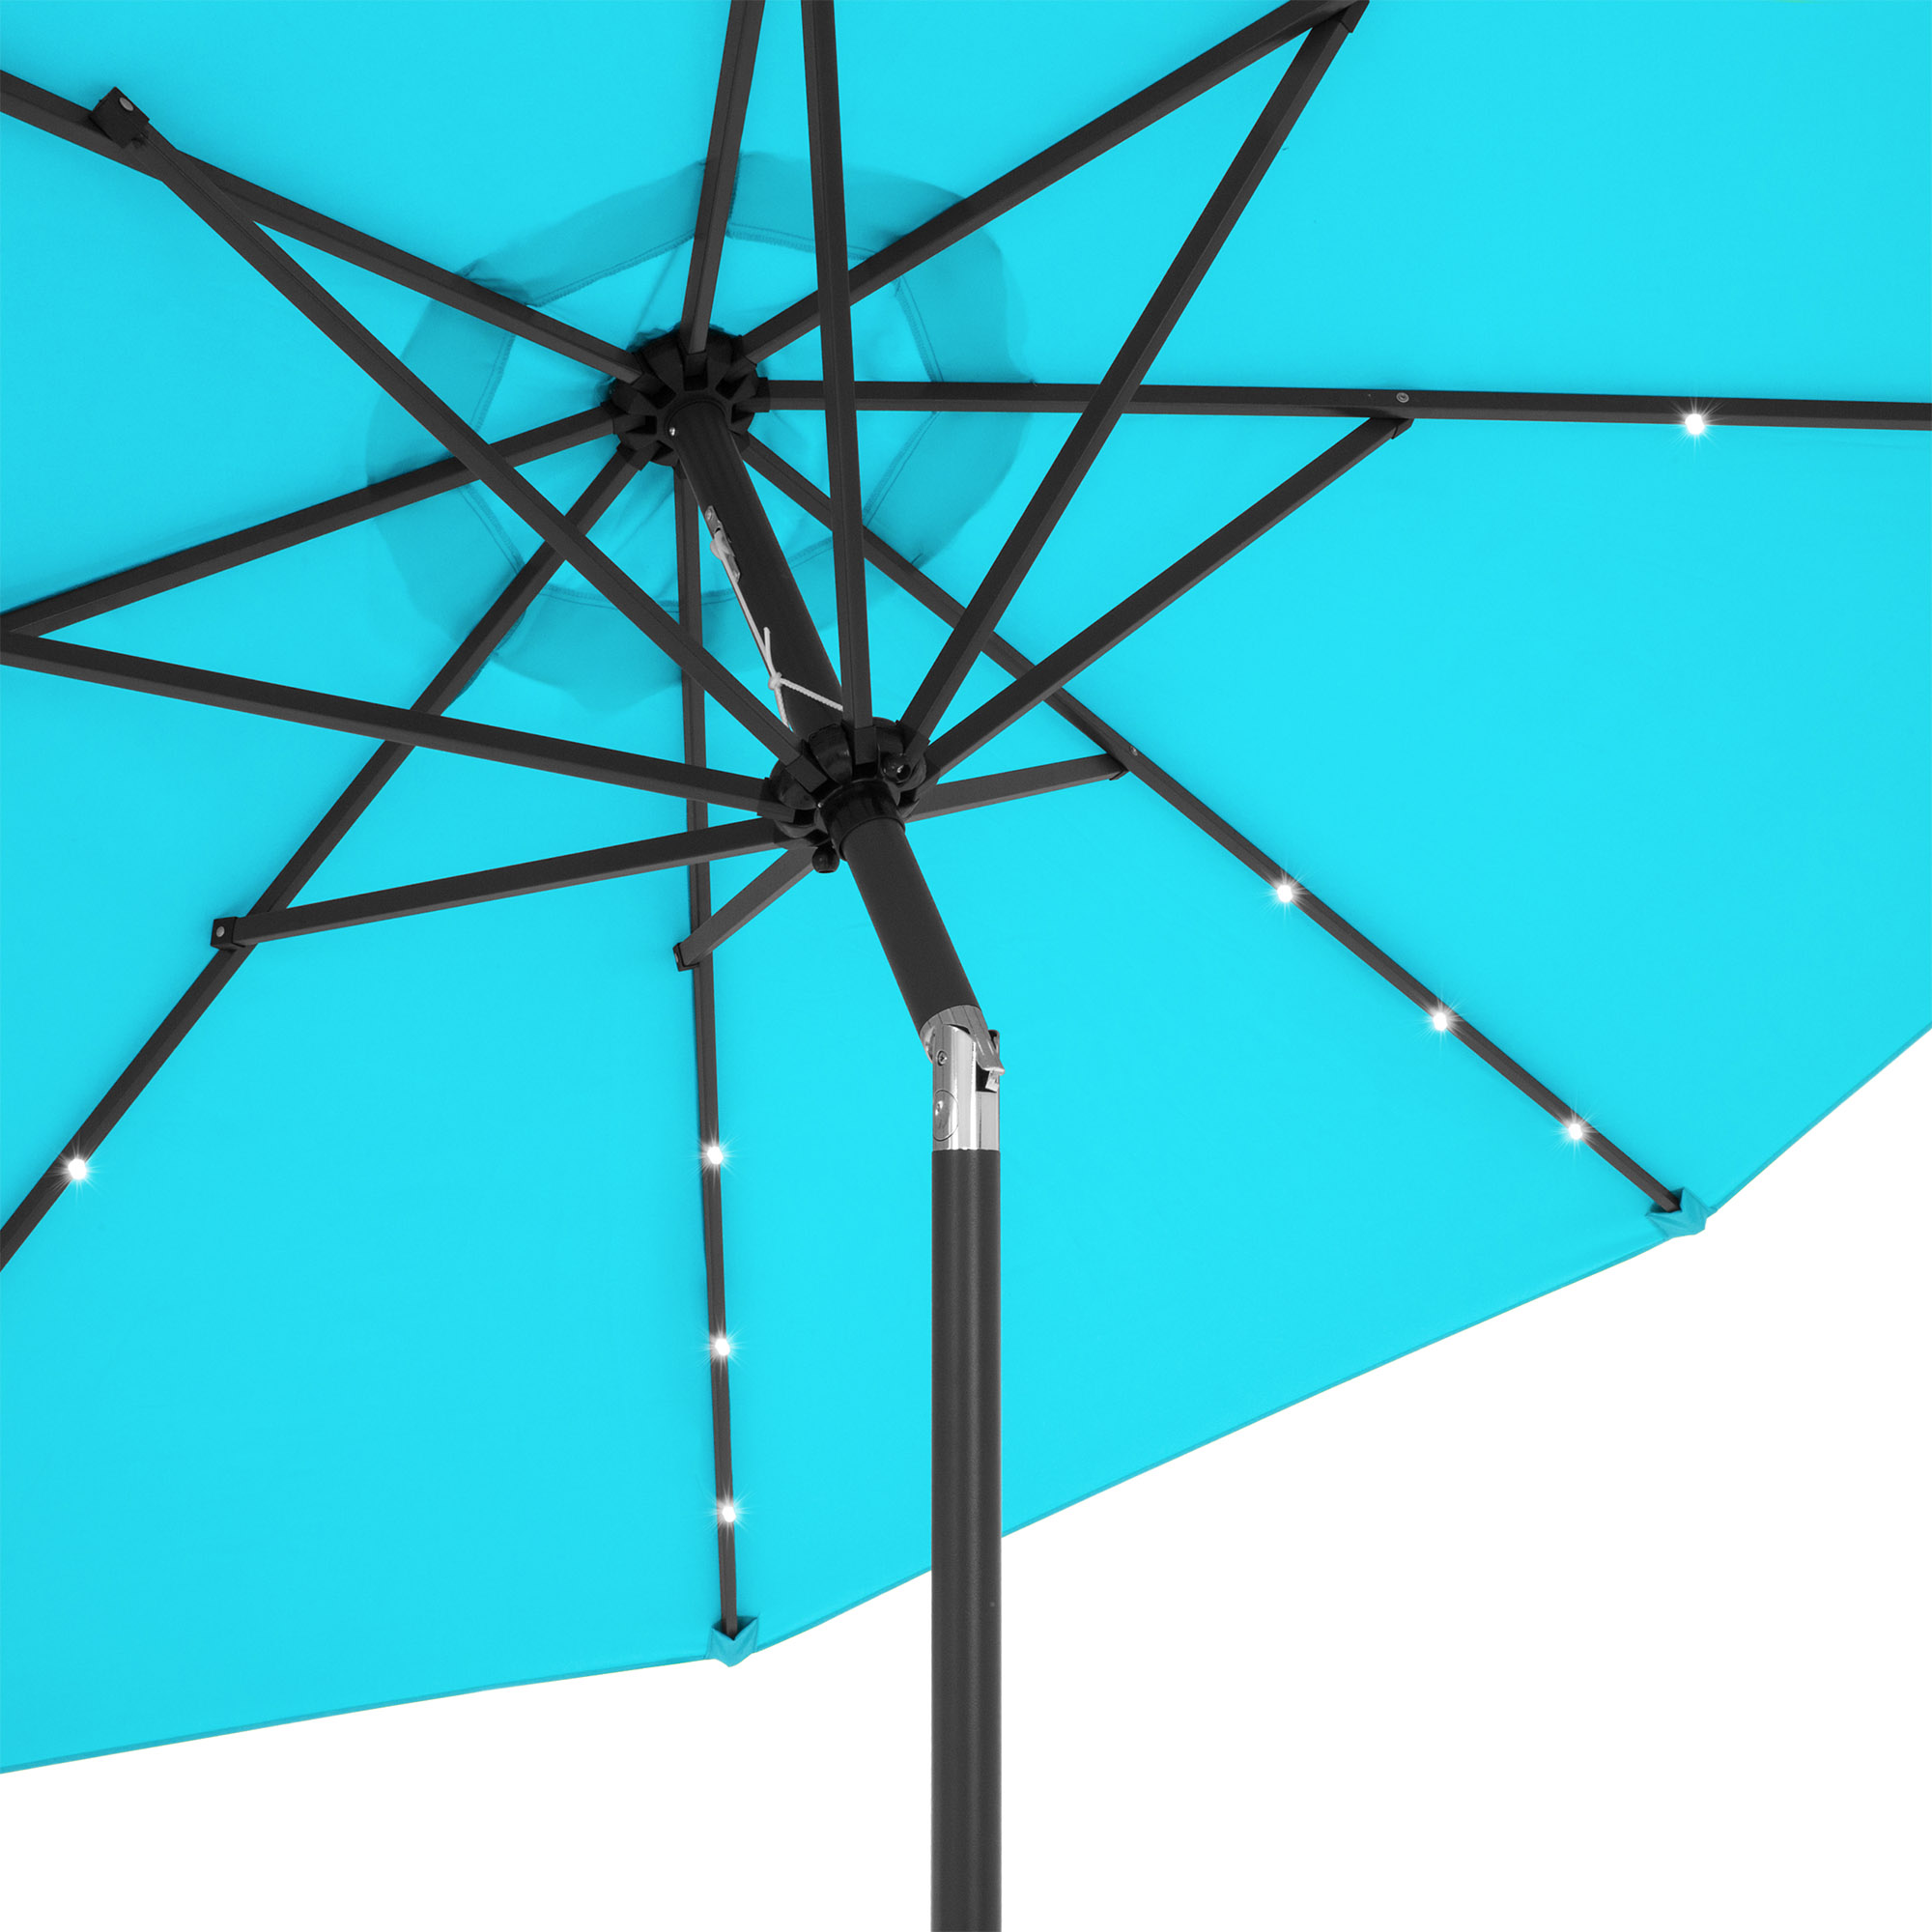 BCP-10ft-Solar-LED-Lighted-Patio-Umbrella-w-Tilt-Adjustment-Fade-Resistance thumbnail 34